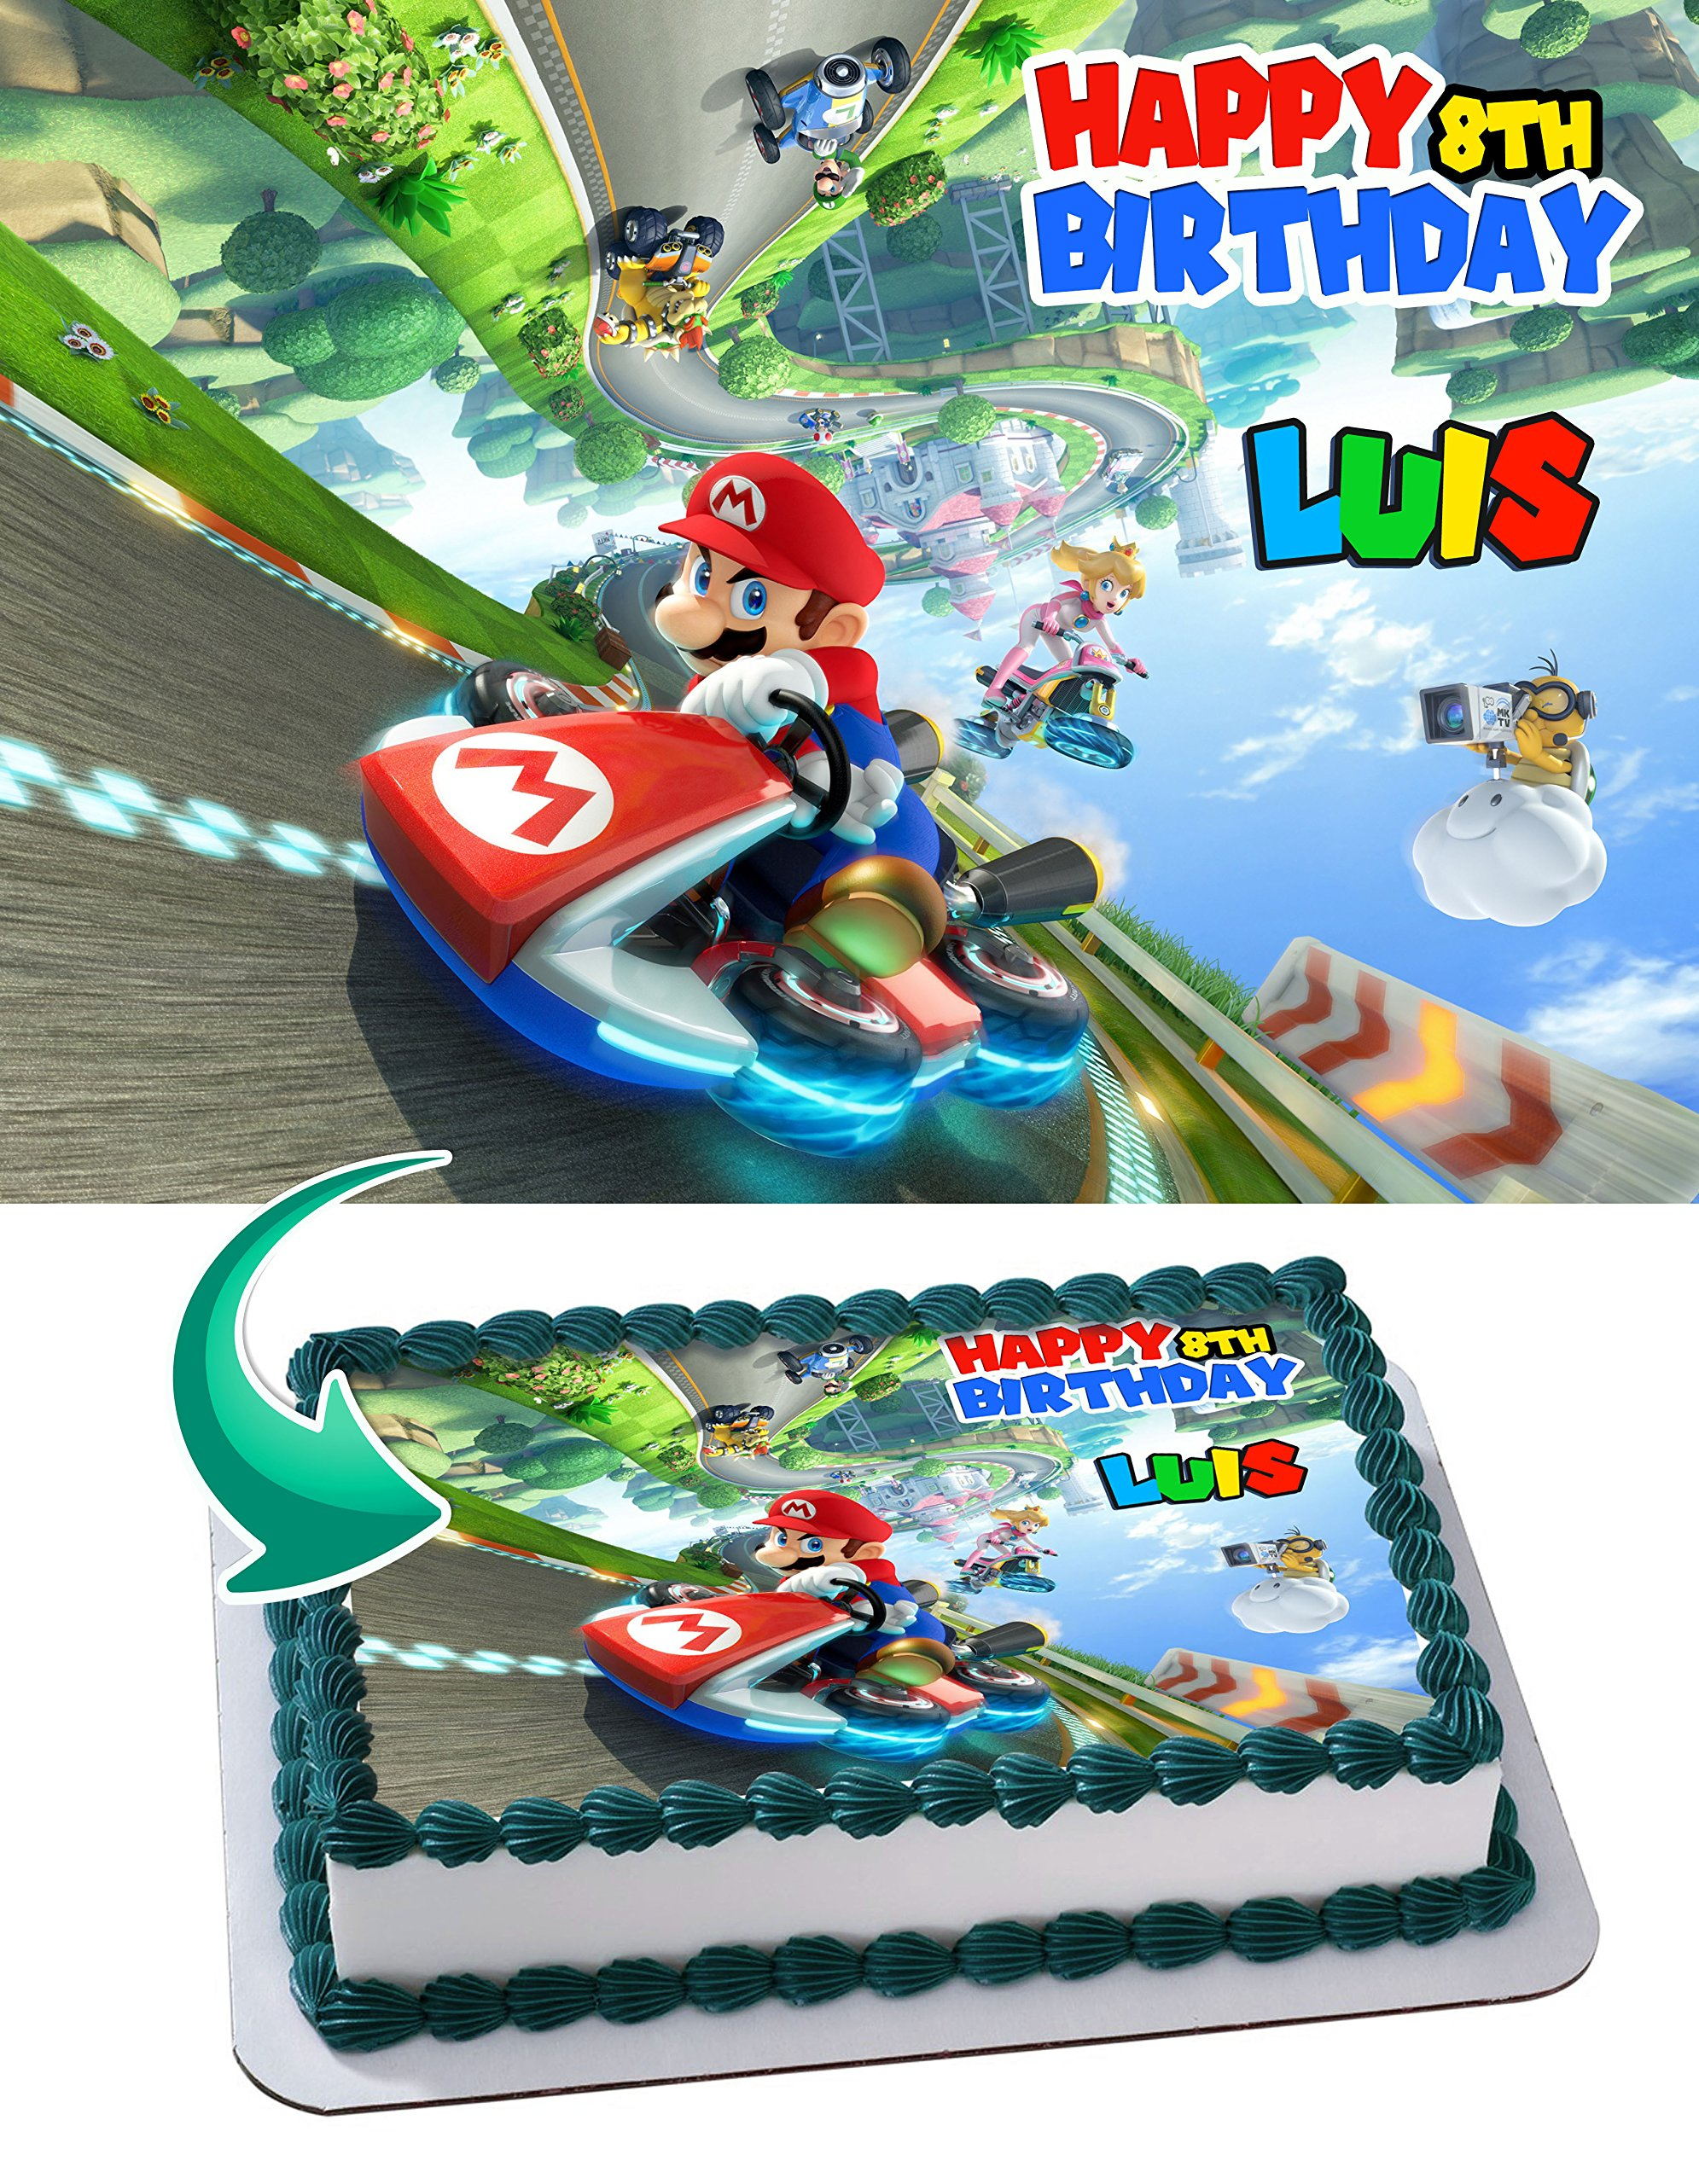 Mario Kart 8 Deluxe Edible Cake Image Personalized Icing Sugar Paper A4 Sheet Edible Frosting Photo Cake 1/4 ~ Best Quality Edible Image for cake